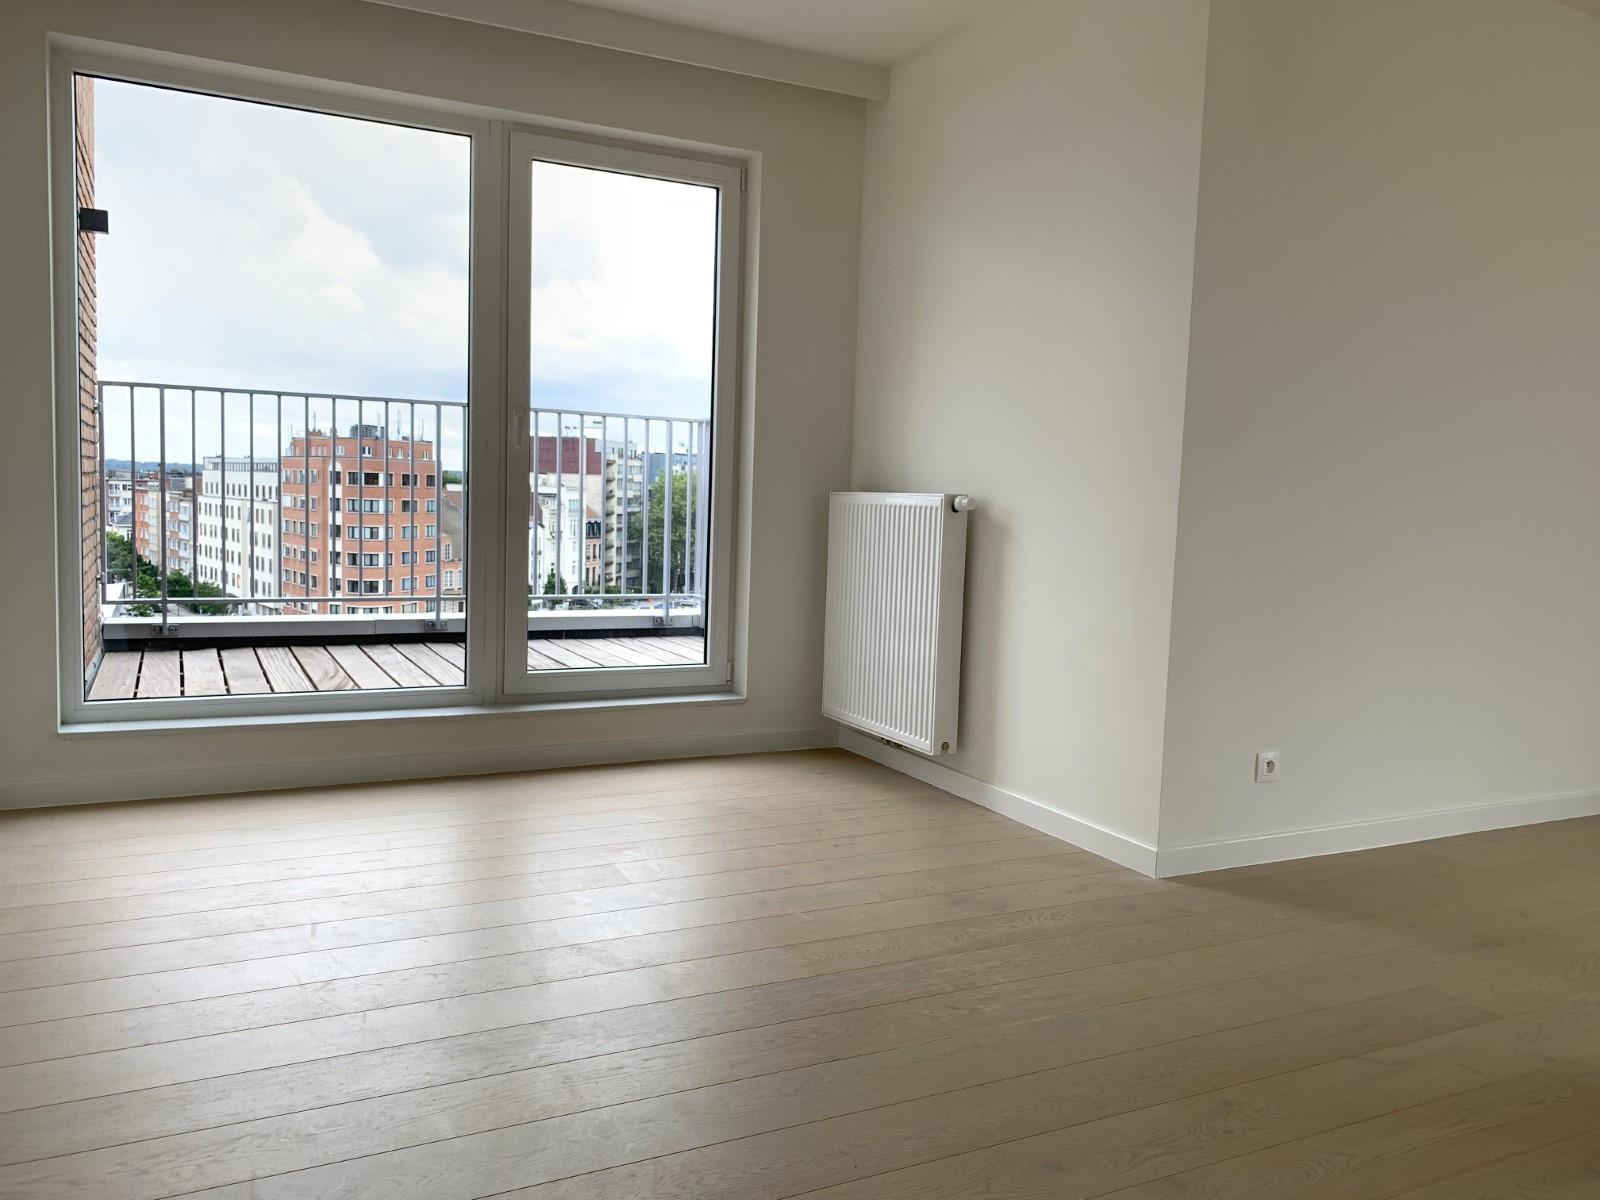 Appartement exceptionnel - Schaerbeek - #3964914-1